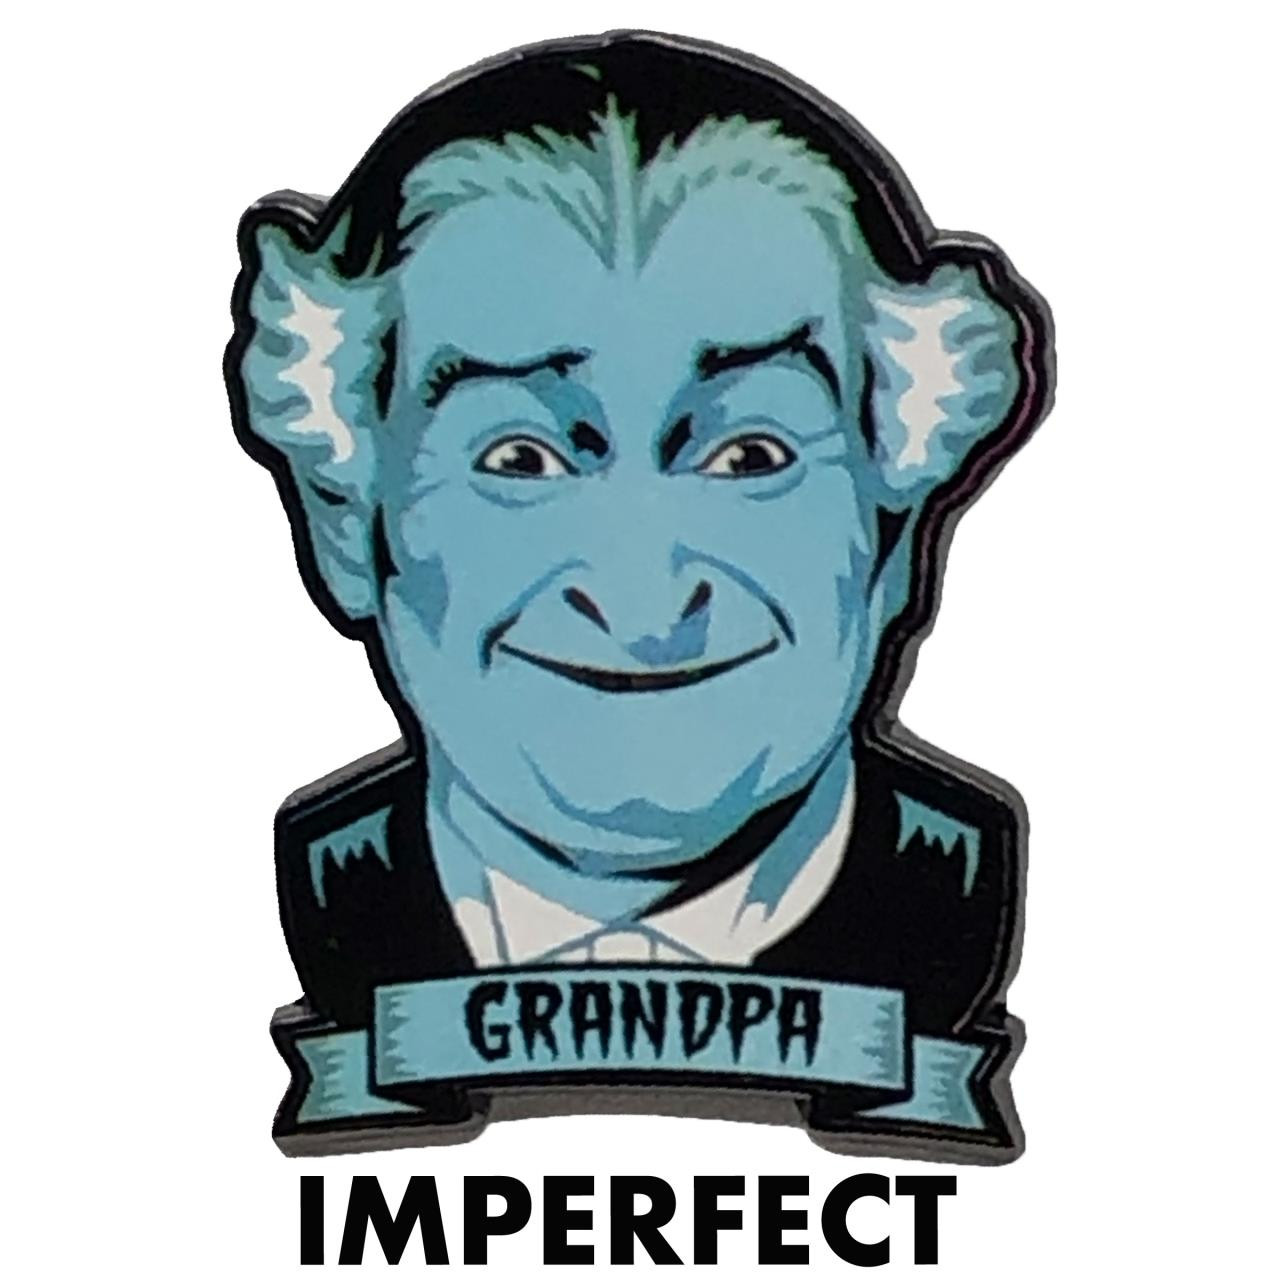 Imperfect Grandpa Munster Collectible Pin* -